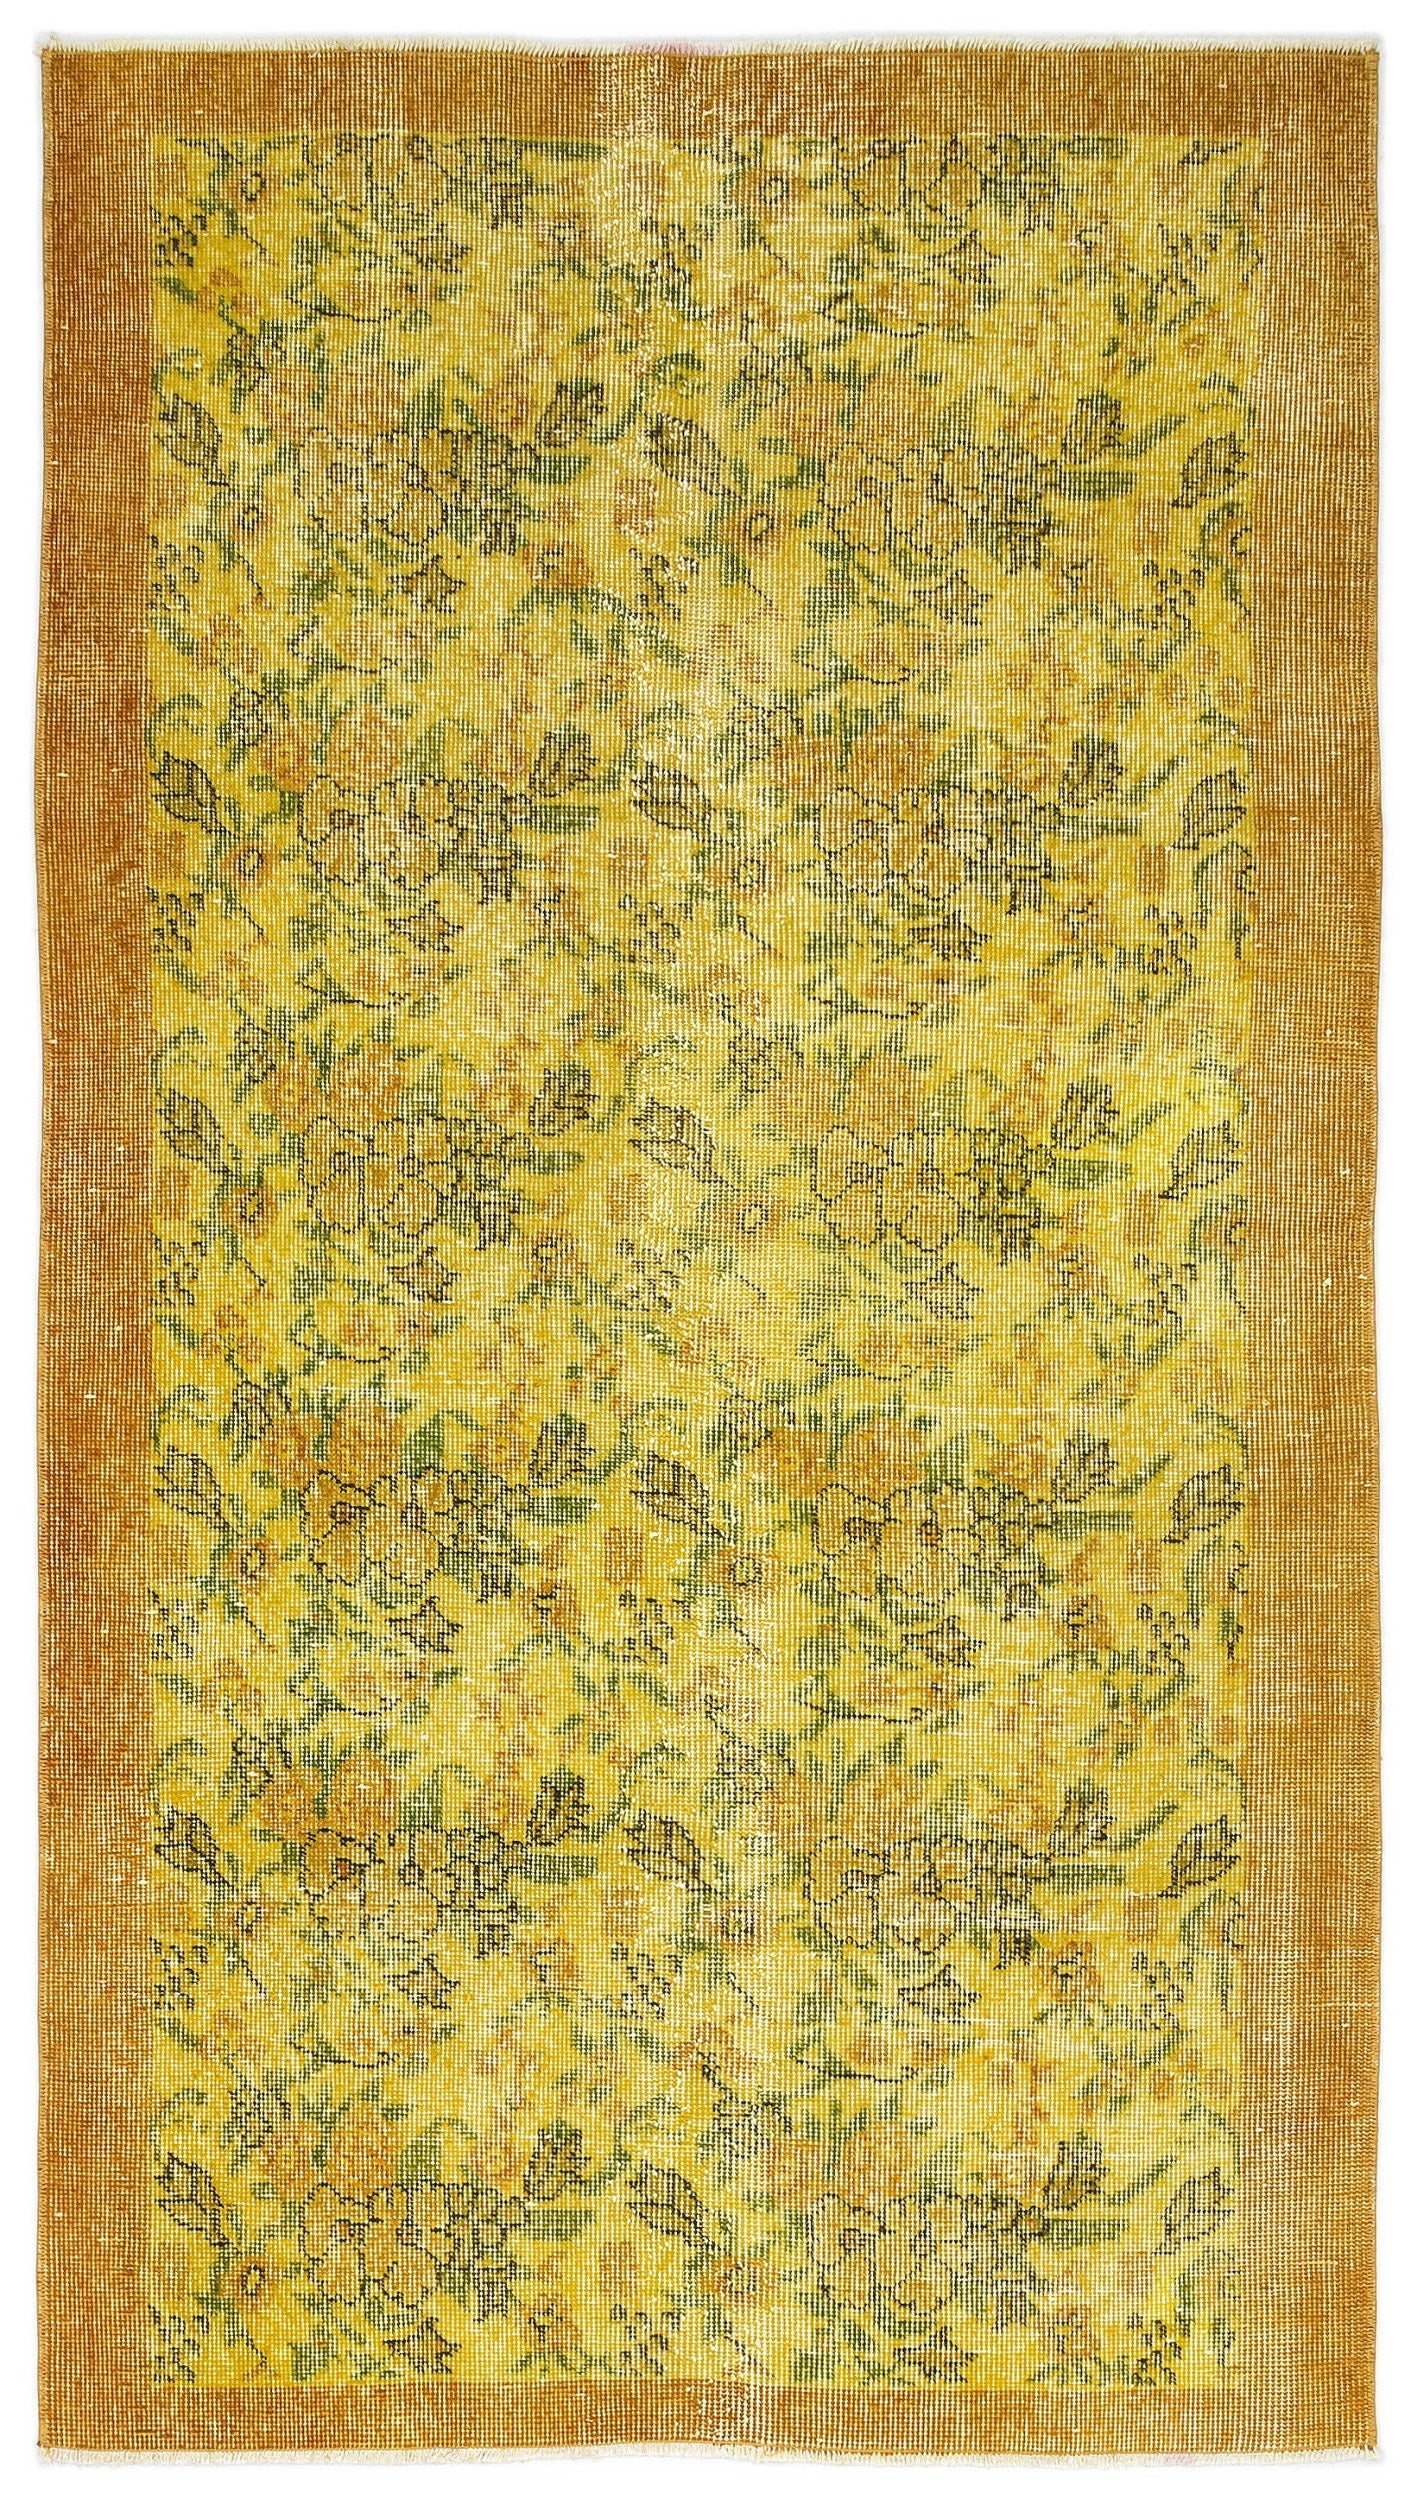 Yellow Over Dyed Vintage Rug 3'8'' x 6'8'' ft 111 x 202 cm